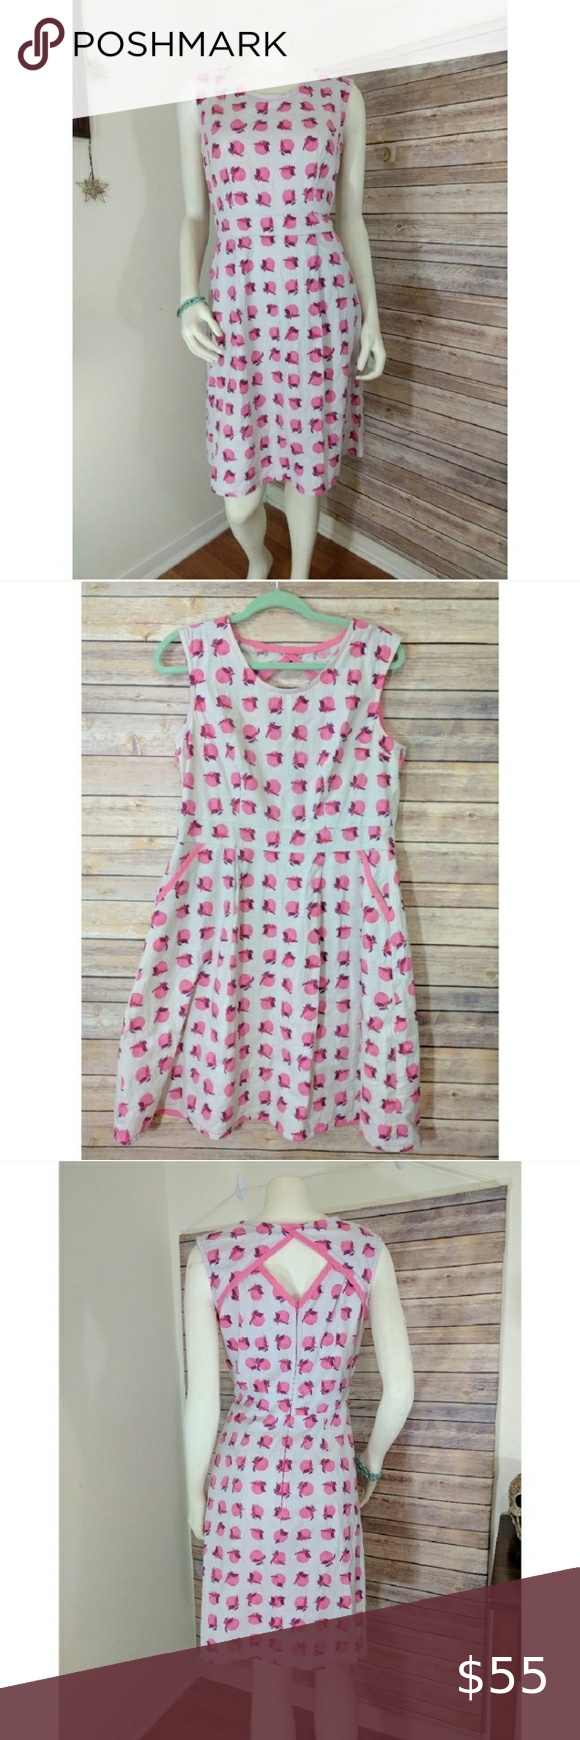 Whimsical Retro Pink Red & Gray Apple Dress Sz 8